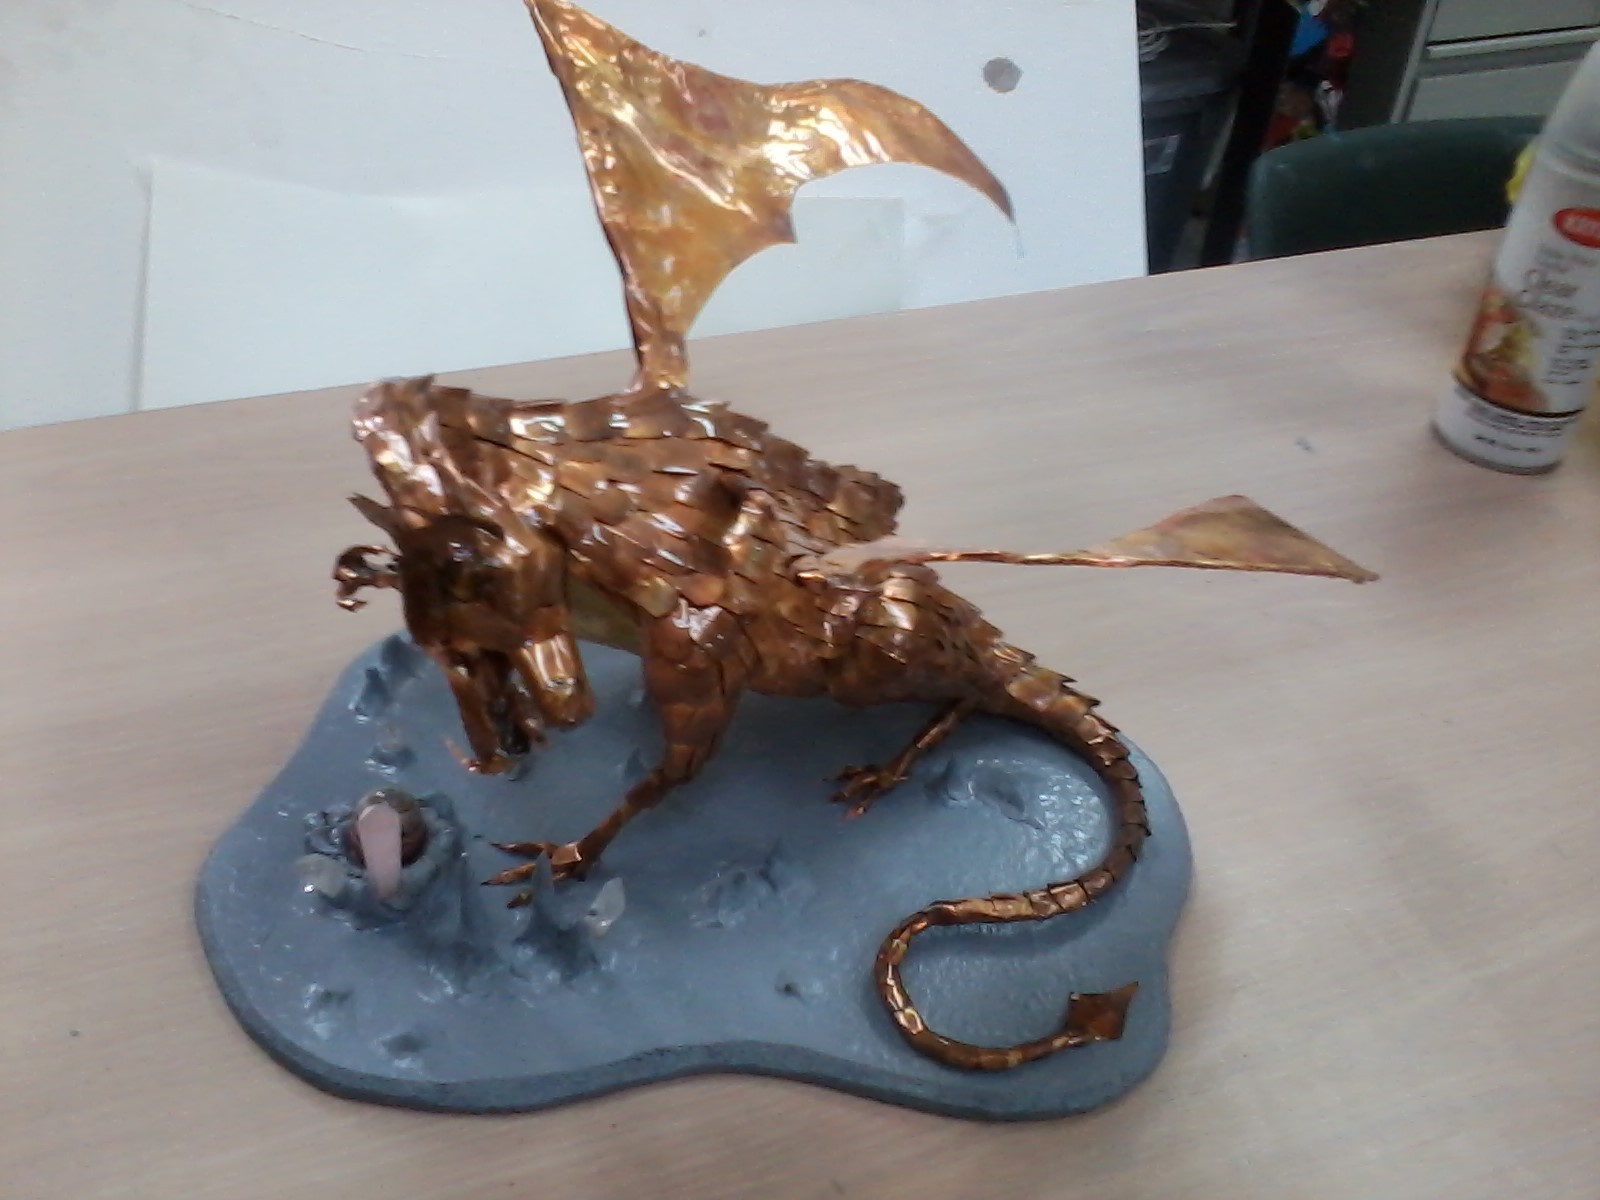 Copper Dragon image 3